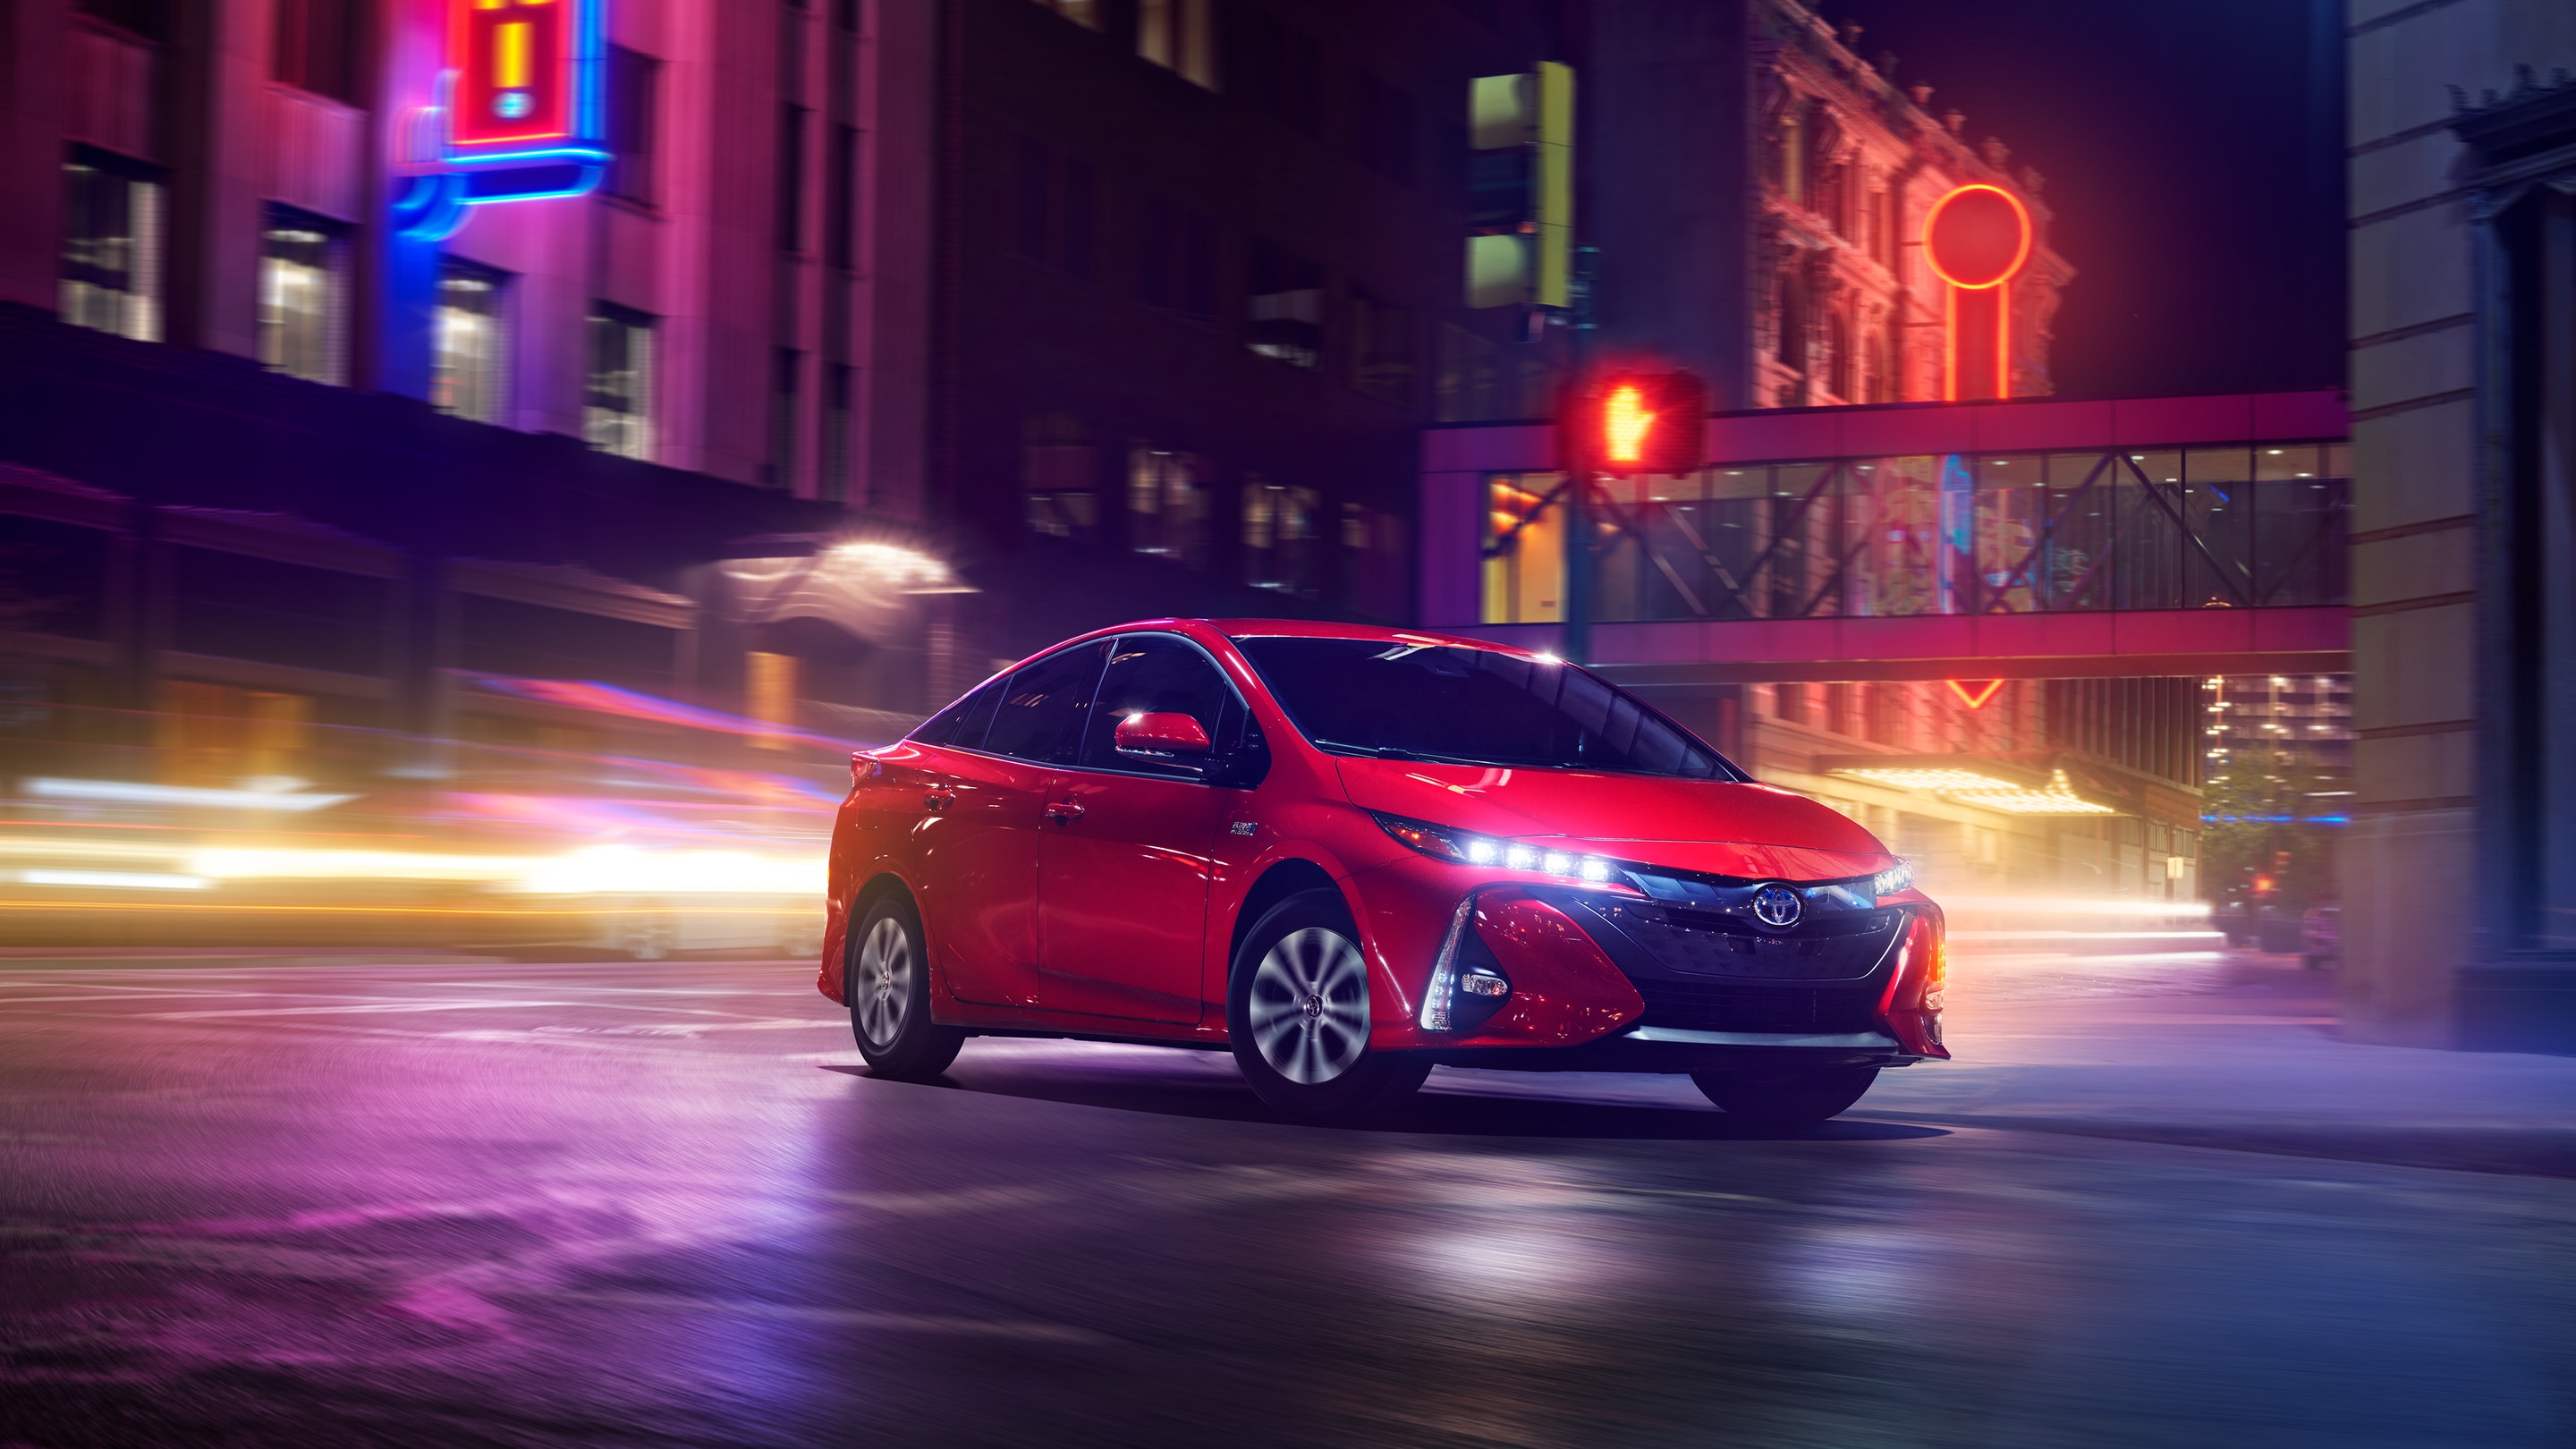 2020 Toyota Prius Prime for Sale near Leawood, KS, 66209